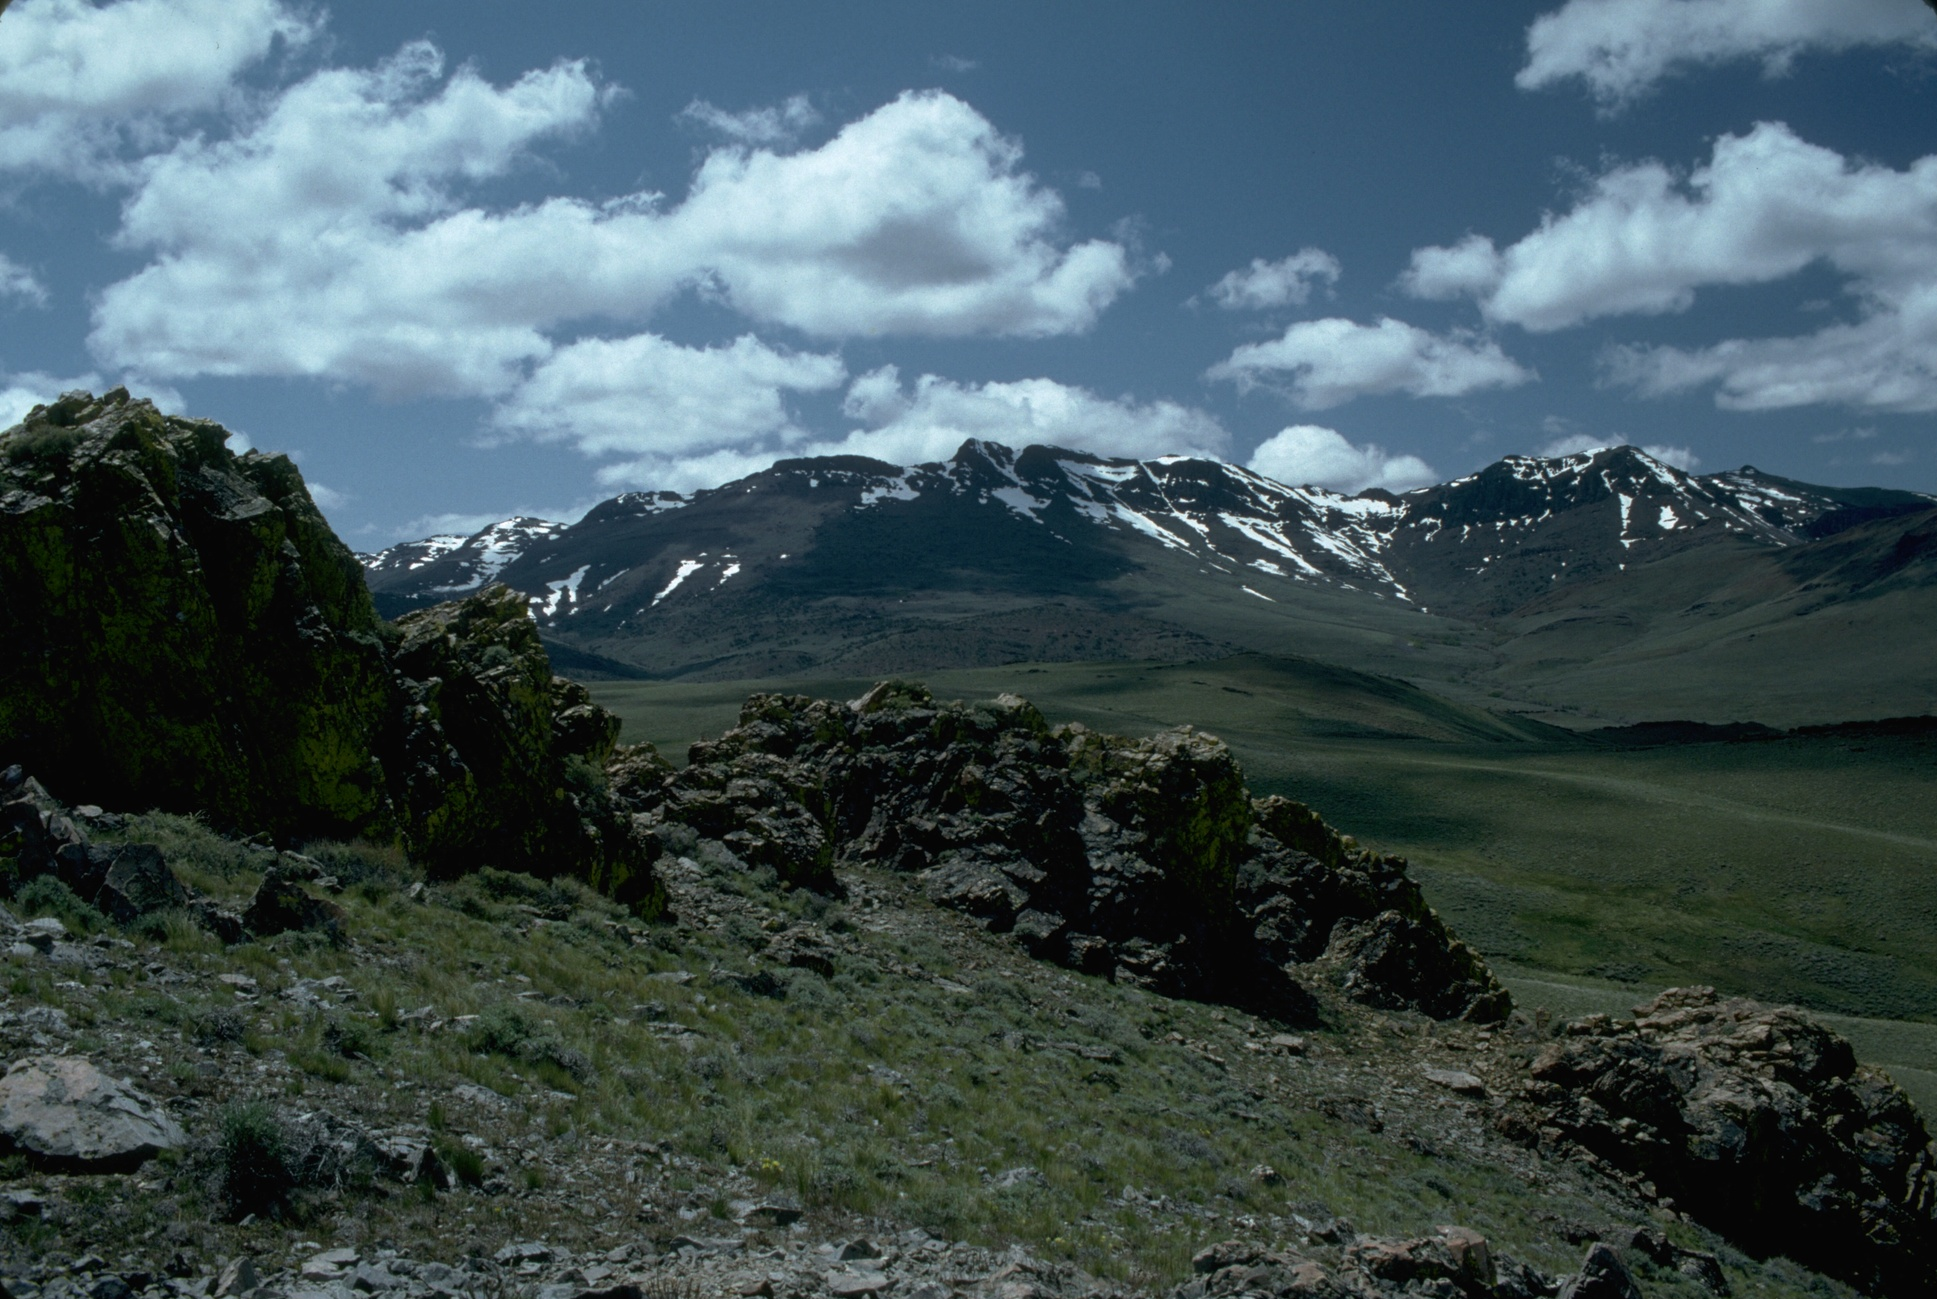 http://upload.wikimedia.org/wikipedia/commons/9/9f/Pueblo_Mountains,_Oregon.jpg